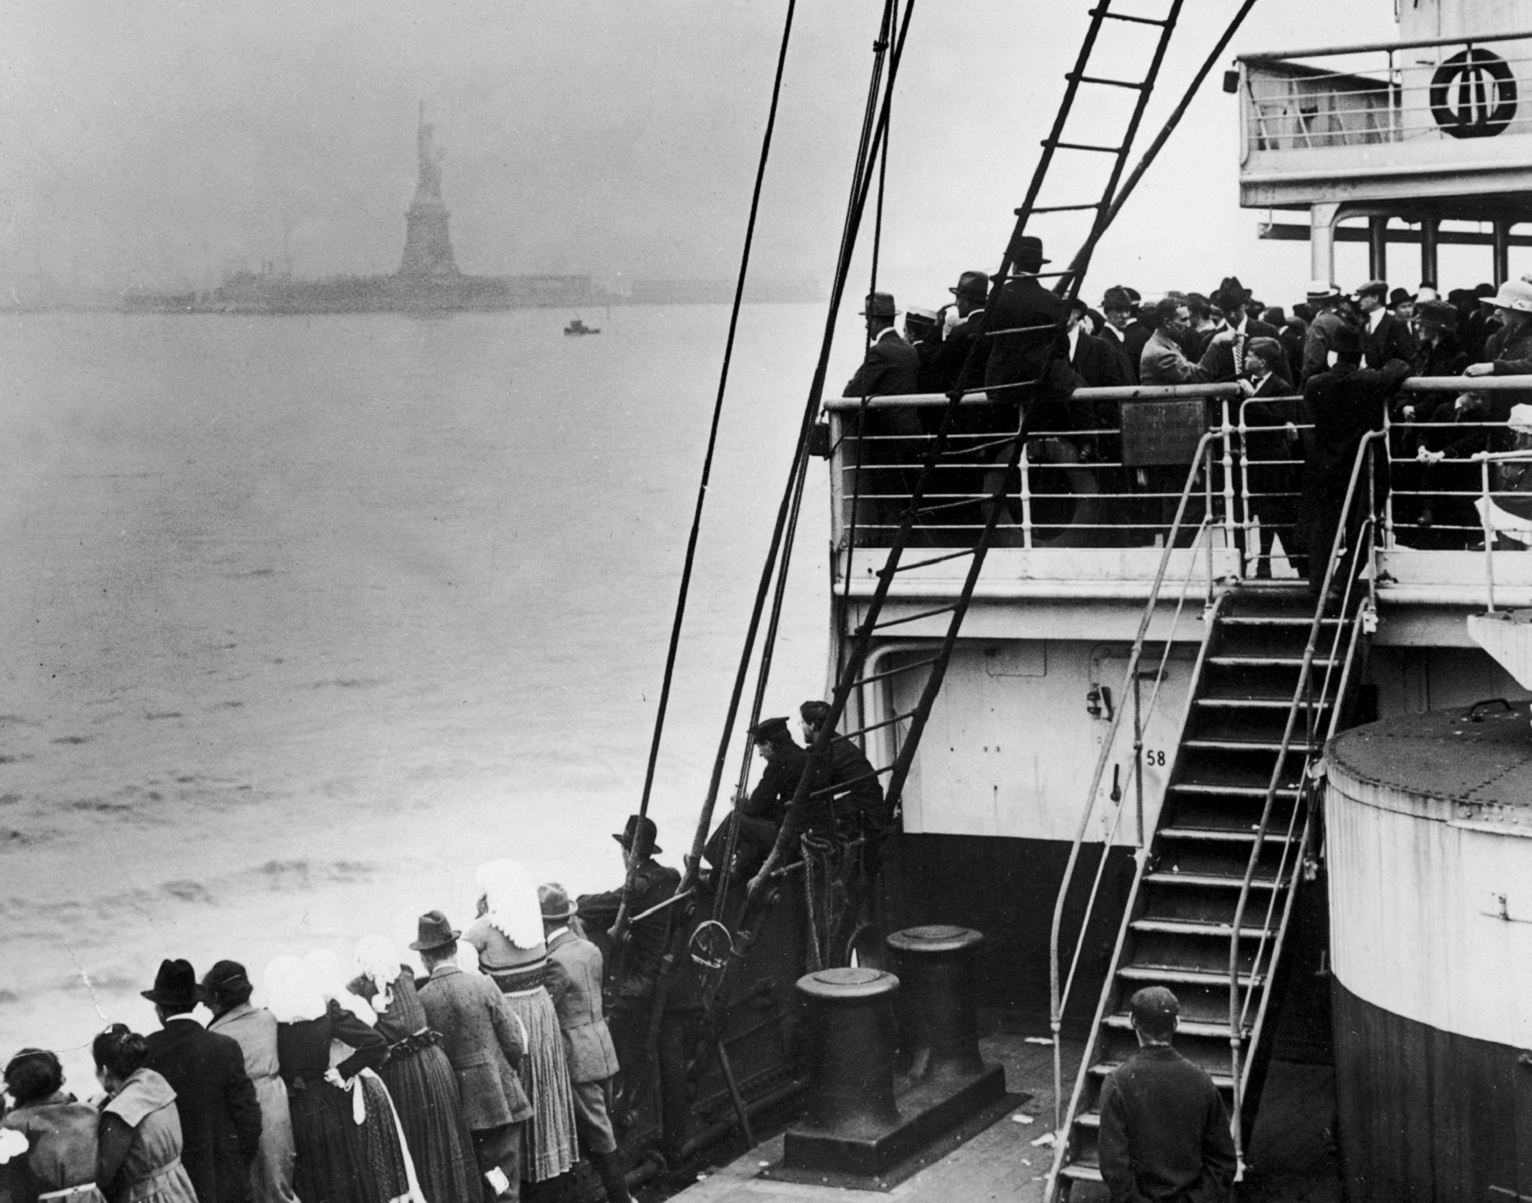 immigration report on irish immigrants Irish immigrants have been settling in the area for decades, driven by recurring economic crises  can the irish help reform us immigration.